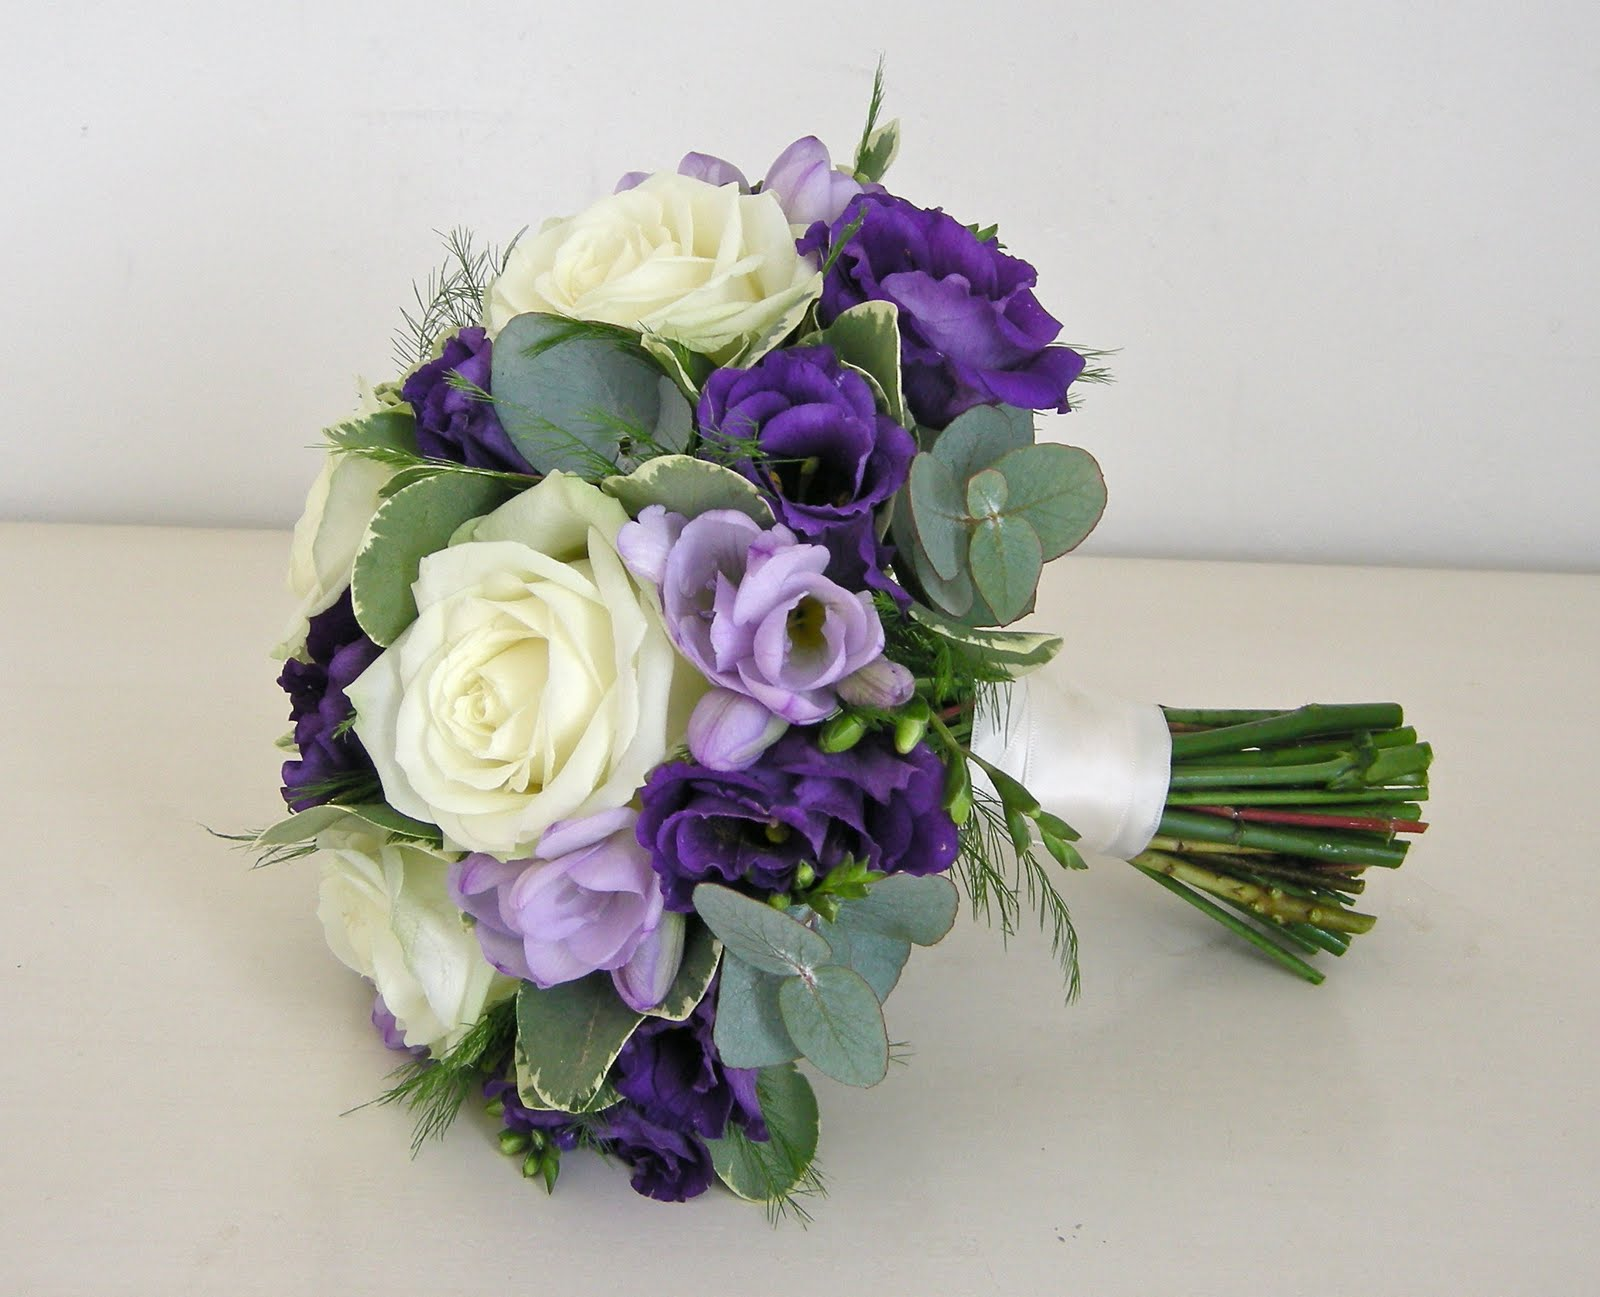 Wedding flowers blog september 2011 for Best flowers for wedding bouquet